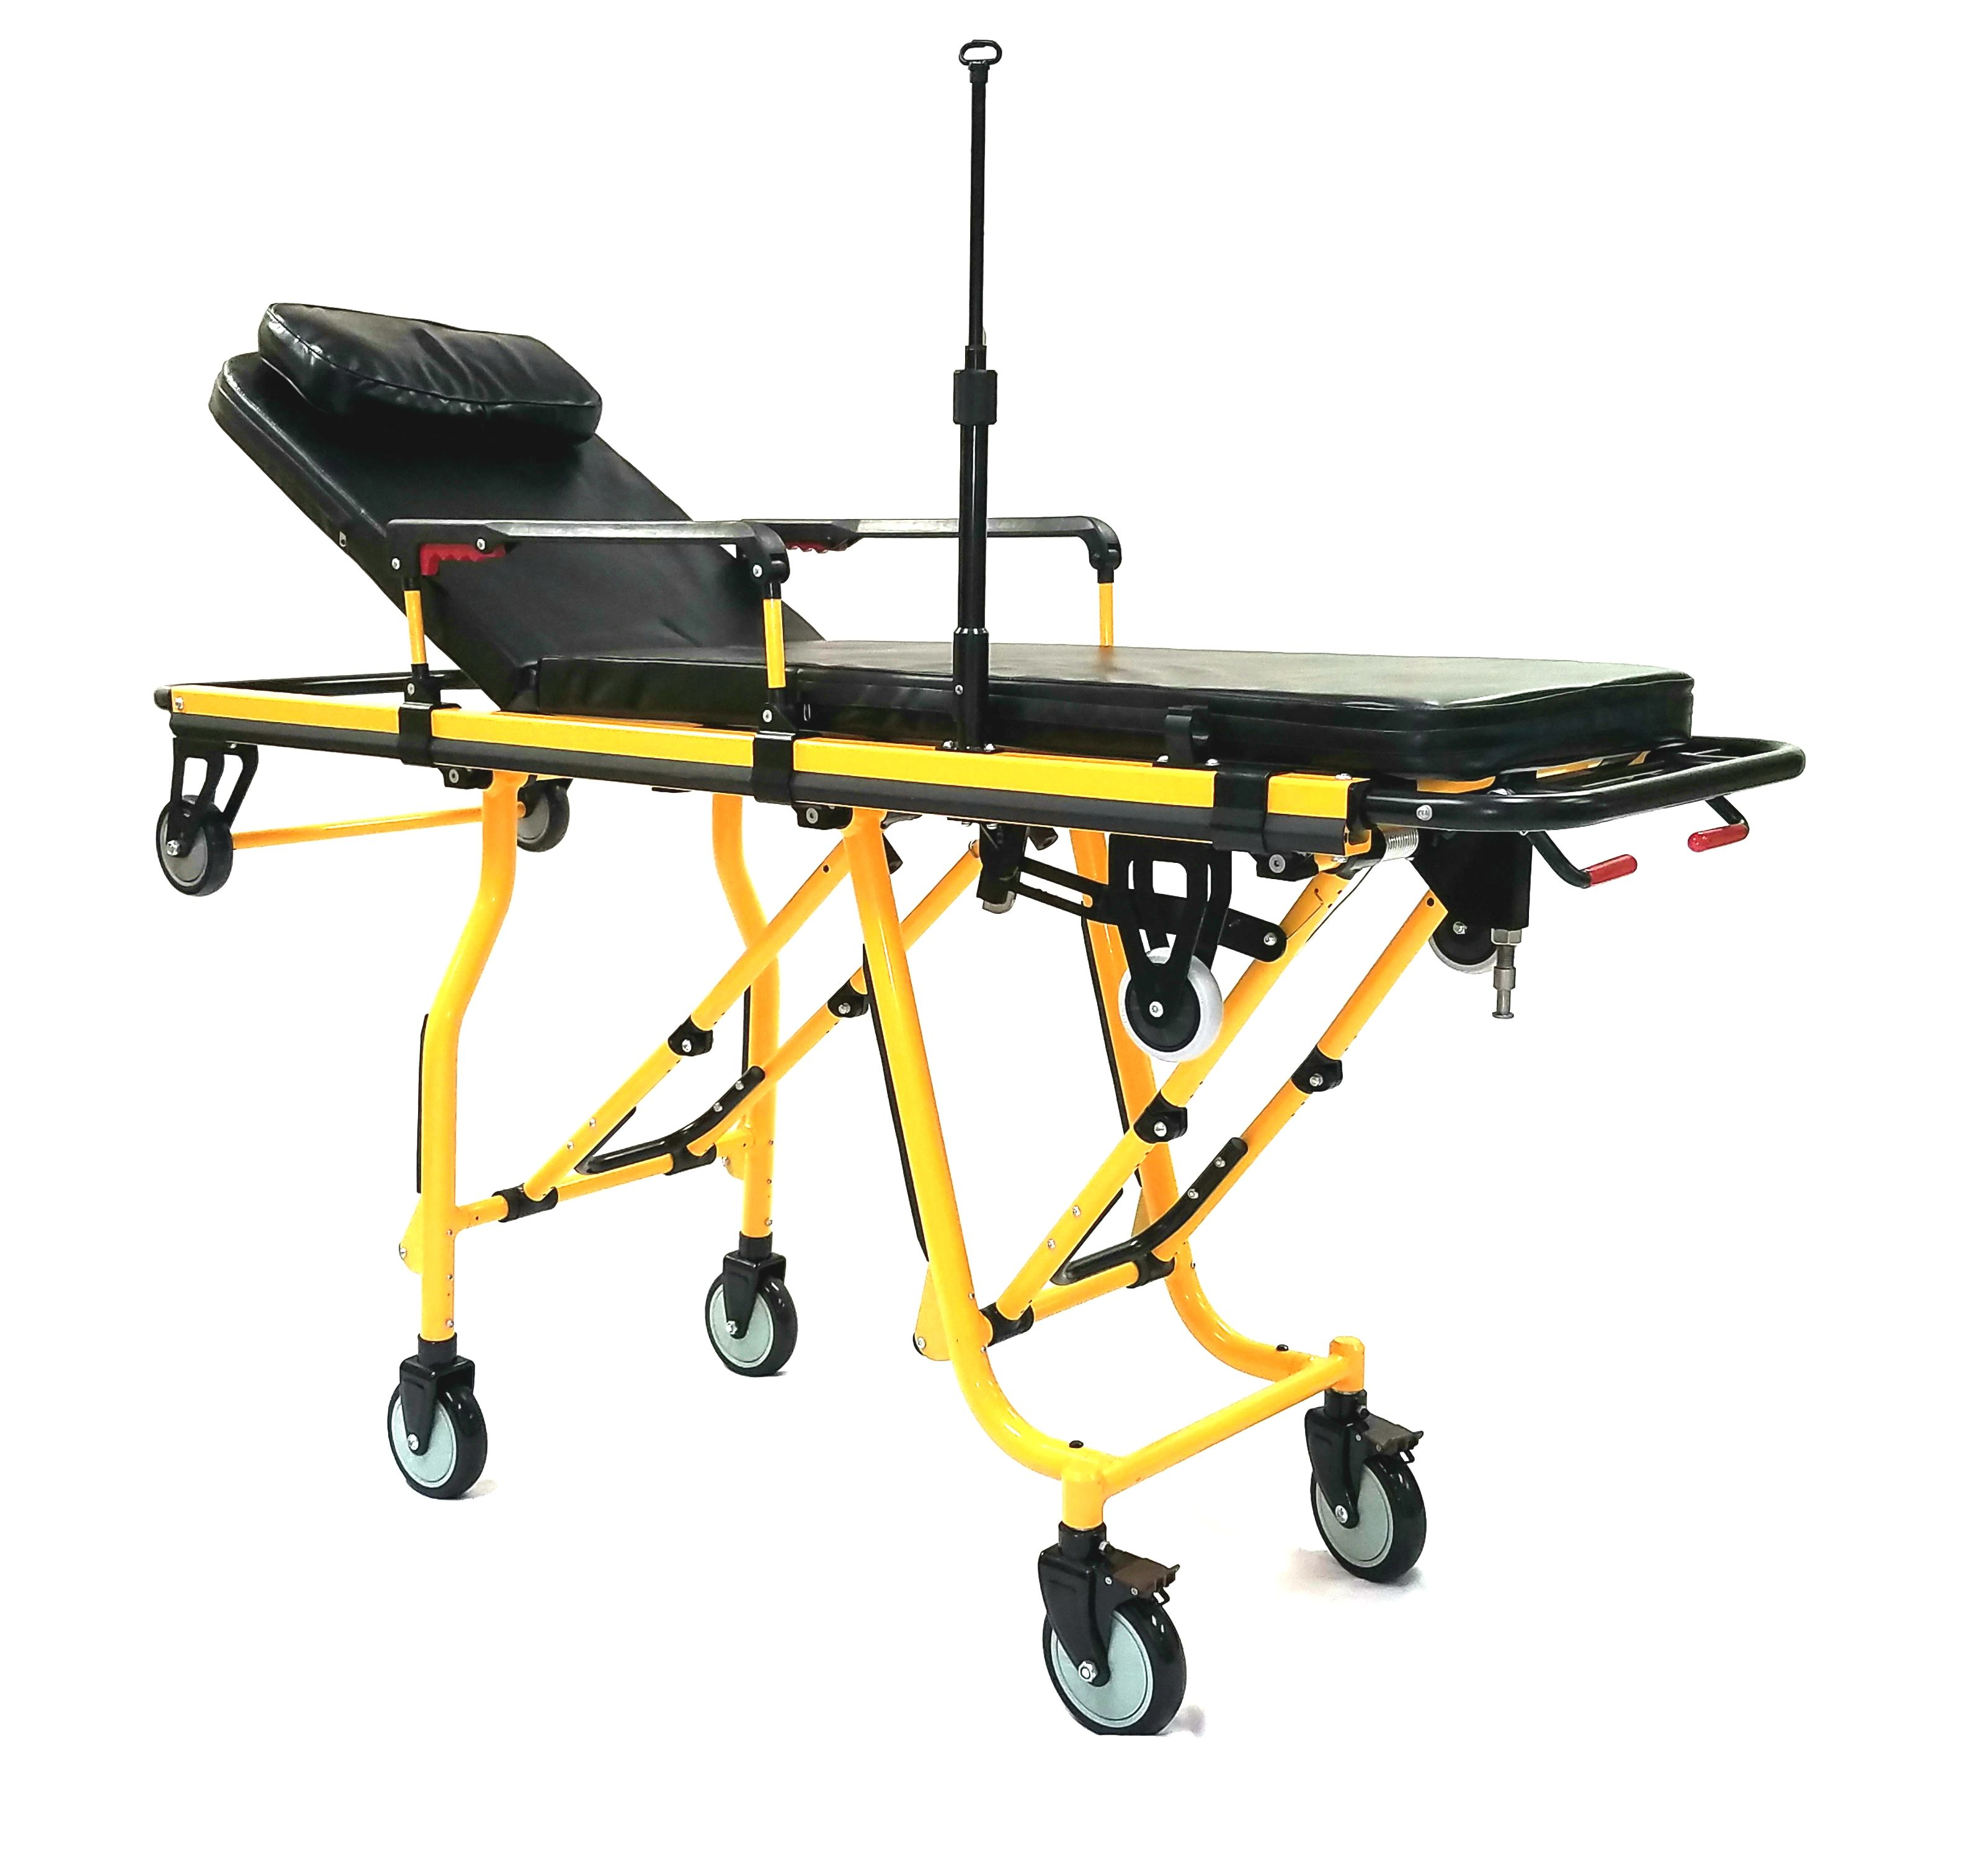 MS3C-200S Aluminum Alloy Ambulance Stretcher